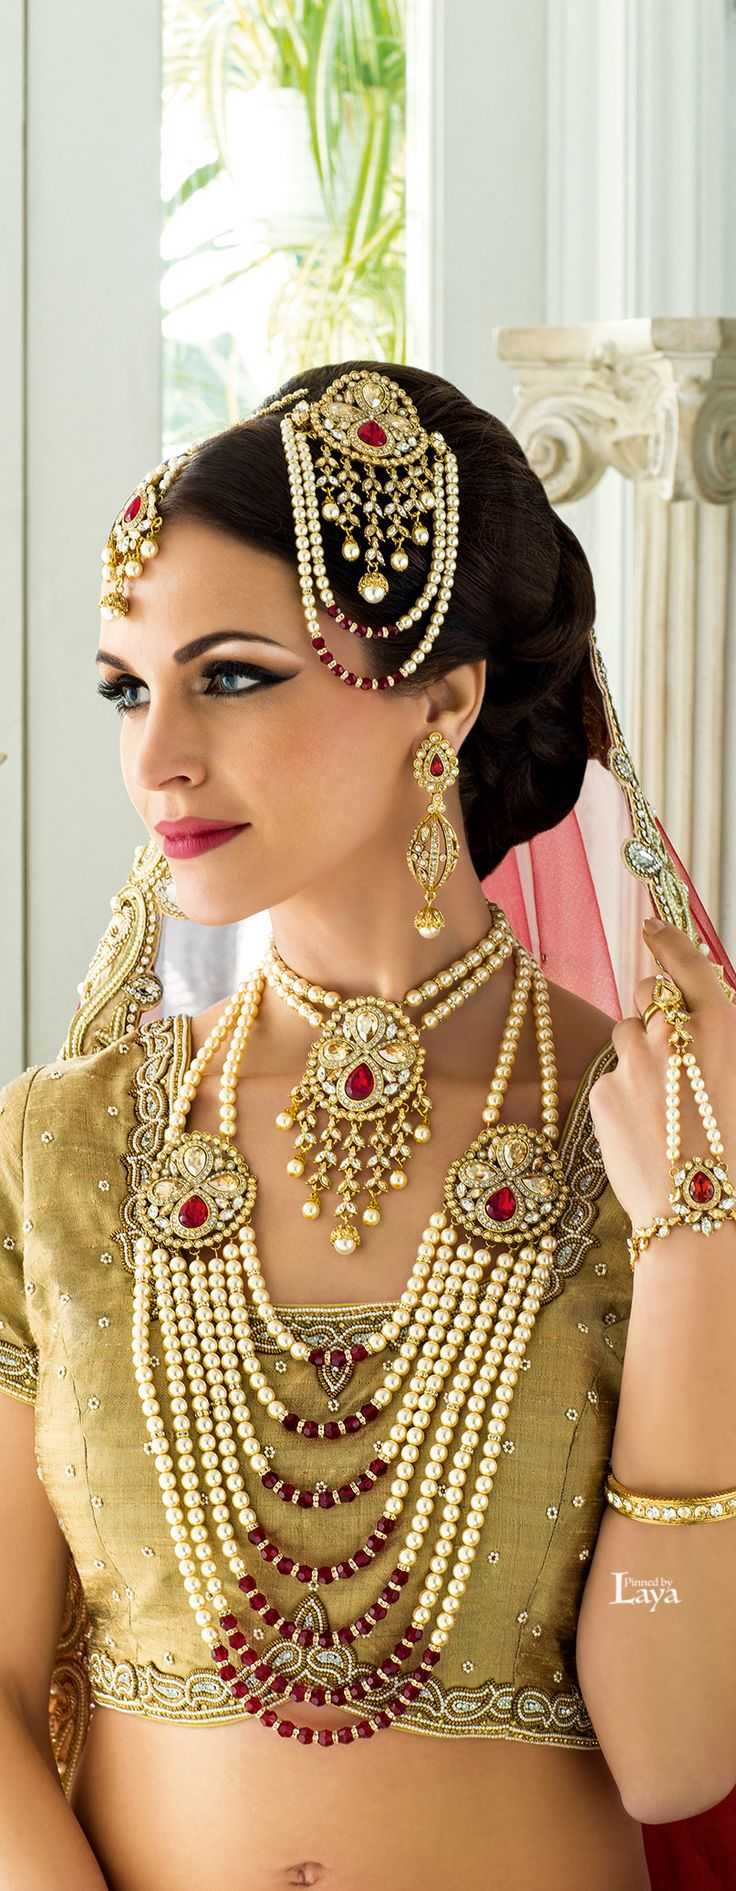 ❋Indian Bride❋Laya http://www.cuetheconversation.com/